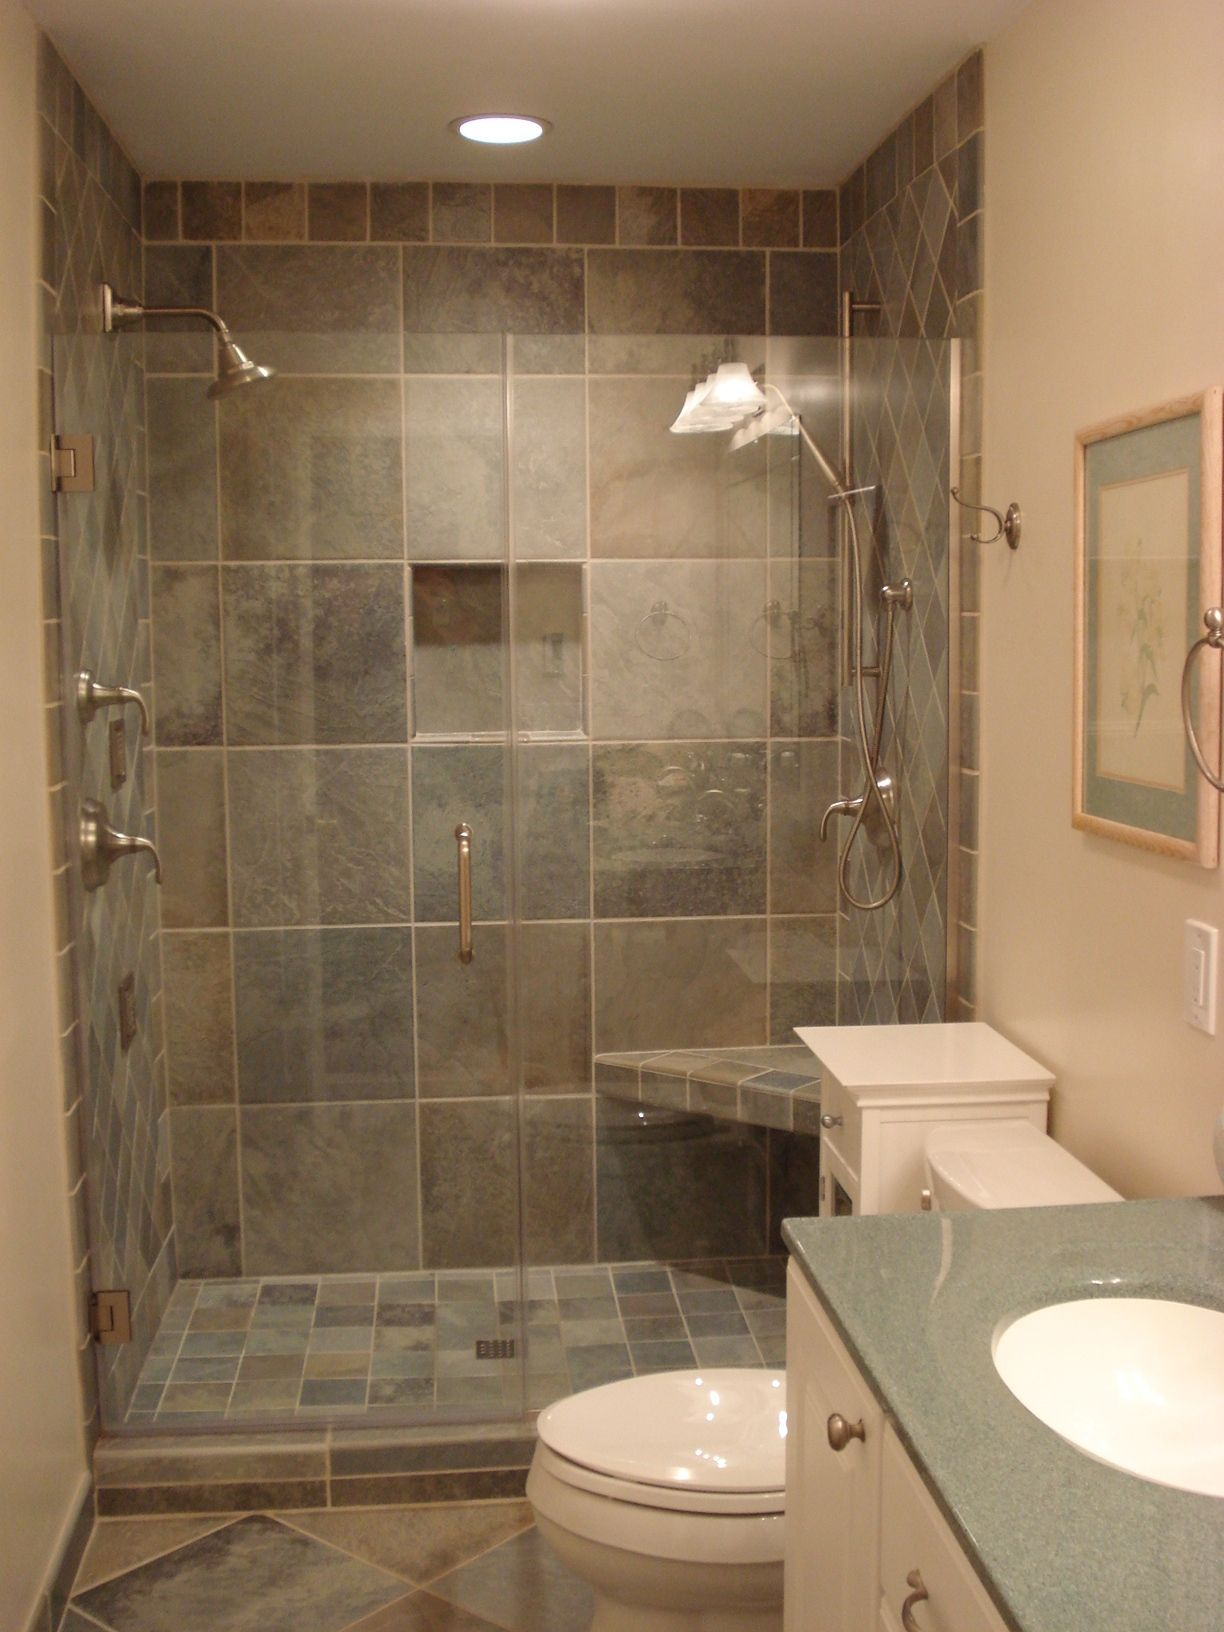 Pictures Of Bathroom Remodels For Small Bathrooms Particularly As It Pertains To The Re Small Bathroom Makeover Bathroom Remodel Shower Bathroom Remodel Cost